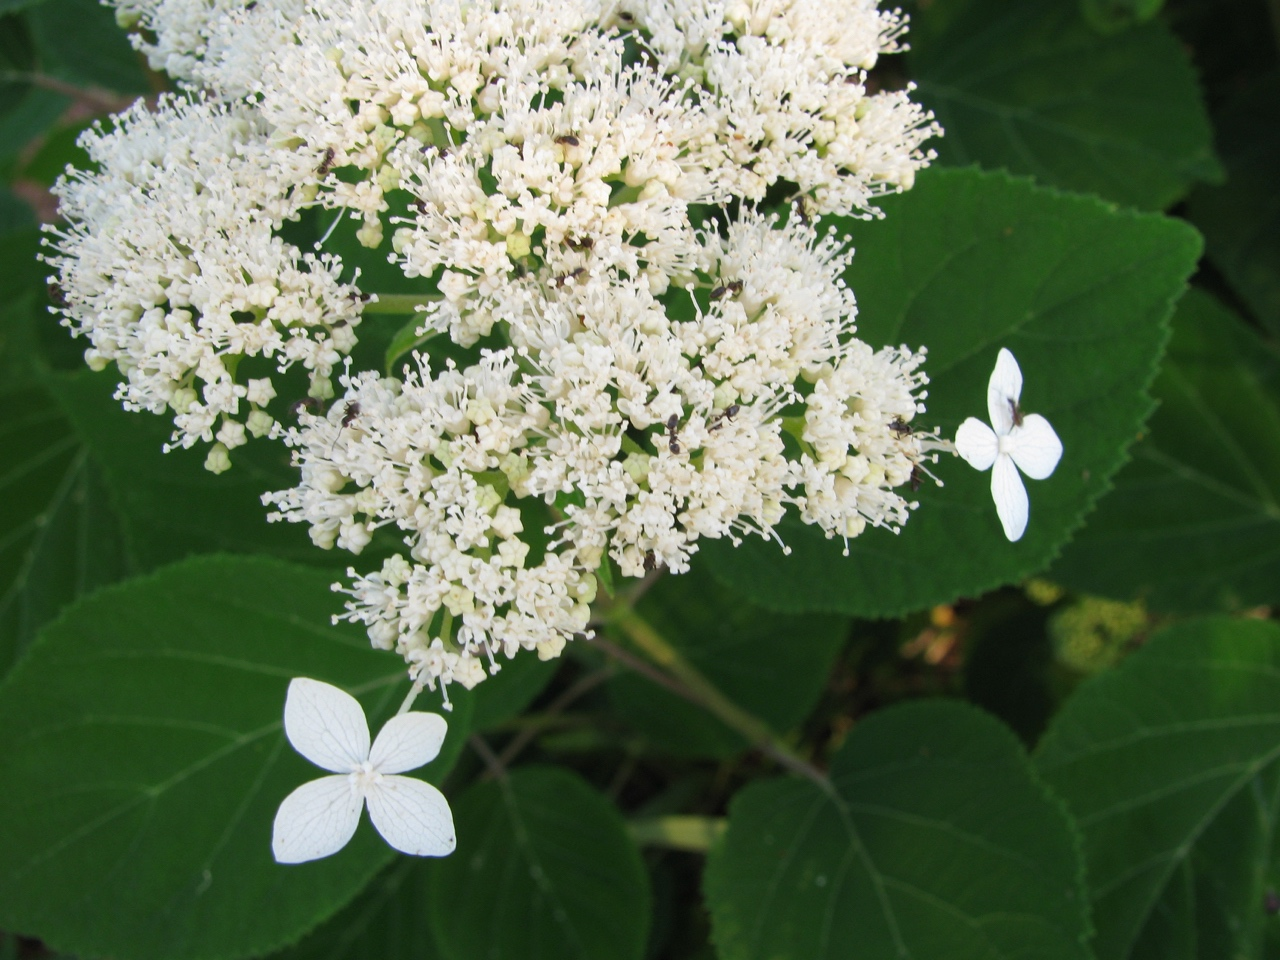 The Scientific Name is Hydrangea radiata [= Hydrangea arborescens ssp. radiata]. You will likely hear them called Silverleaf Hydrangea, Snowy Hydrangea. This picture shows the In full bloom in late May of Hydrangea radiata [= Hydrangea arborescens ssp. radiata]